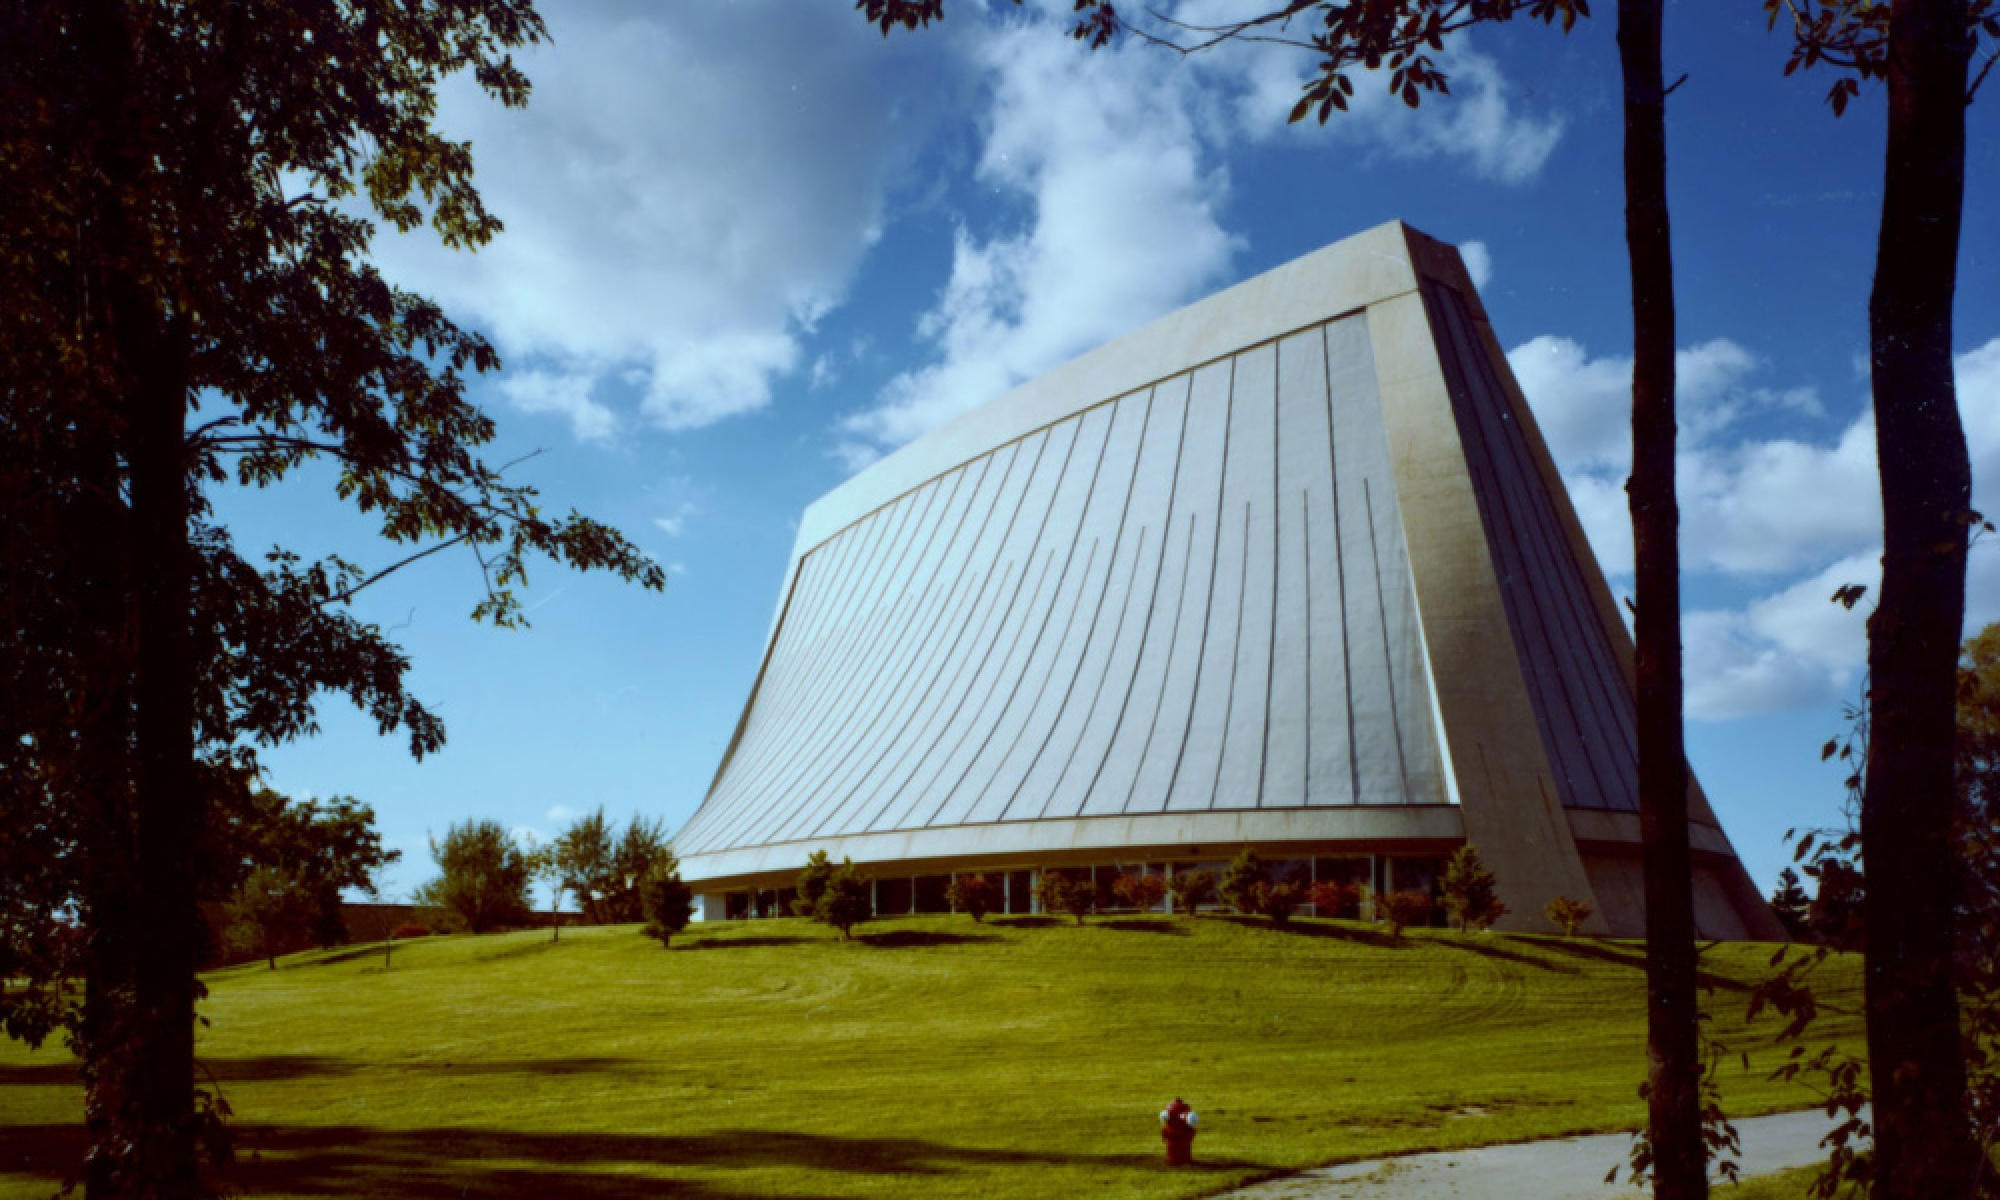 Temple Beth El in Troy, Michigan. The shape of the building was meant to evoke the tents of the biblical Israelites. Image via the Wayne State University Yamasaki Legacy.